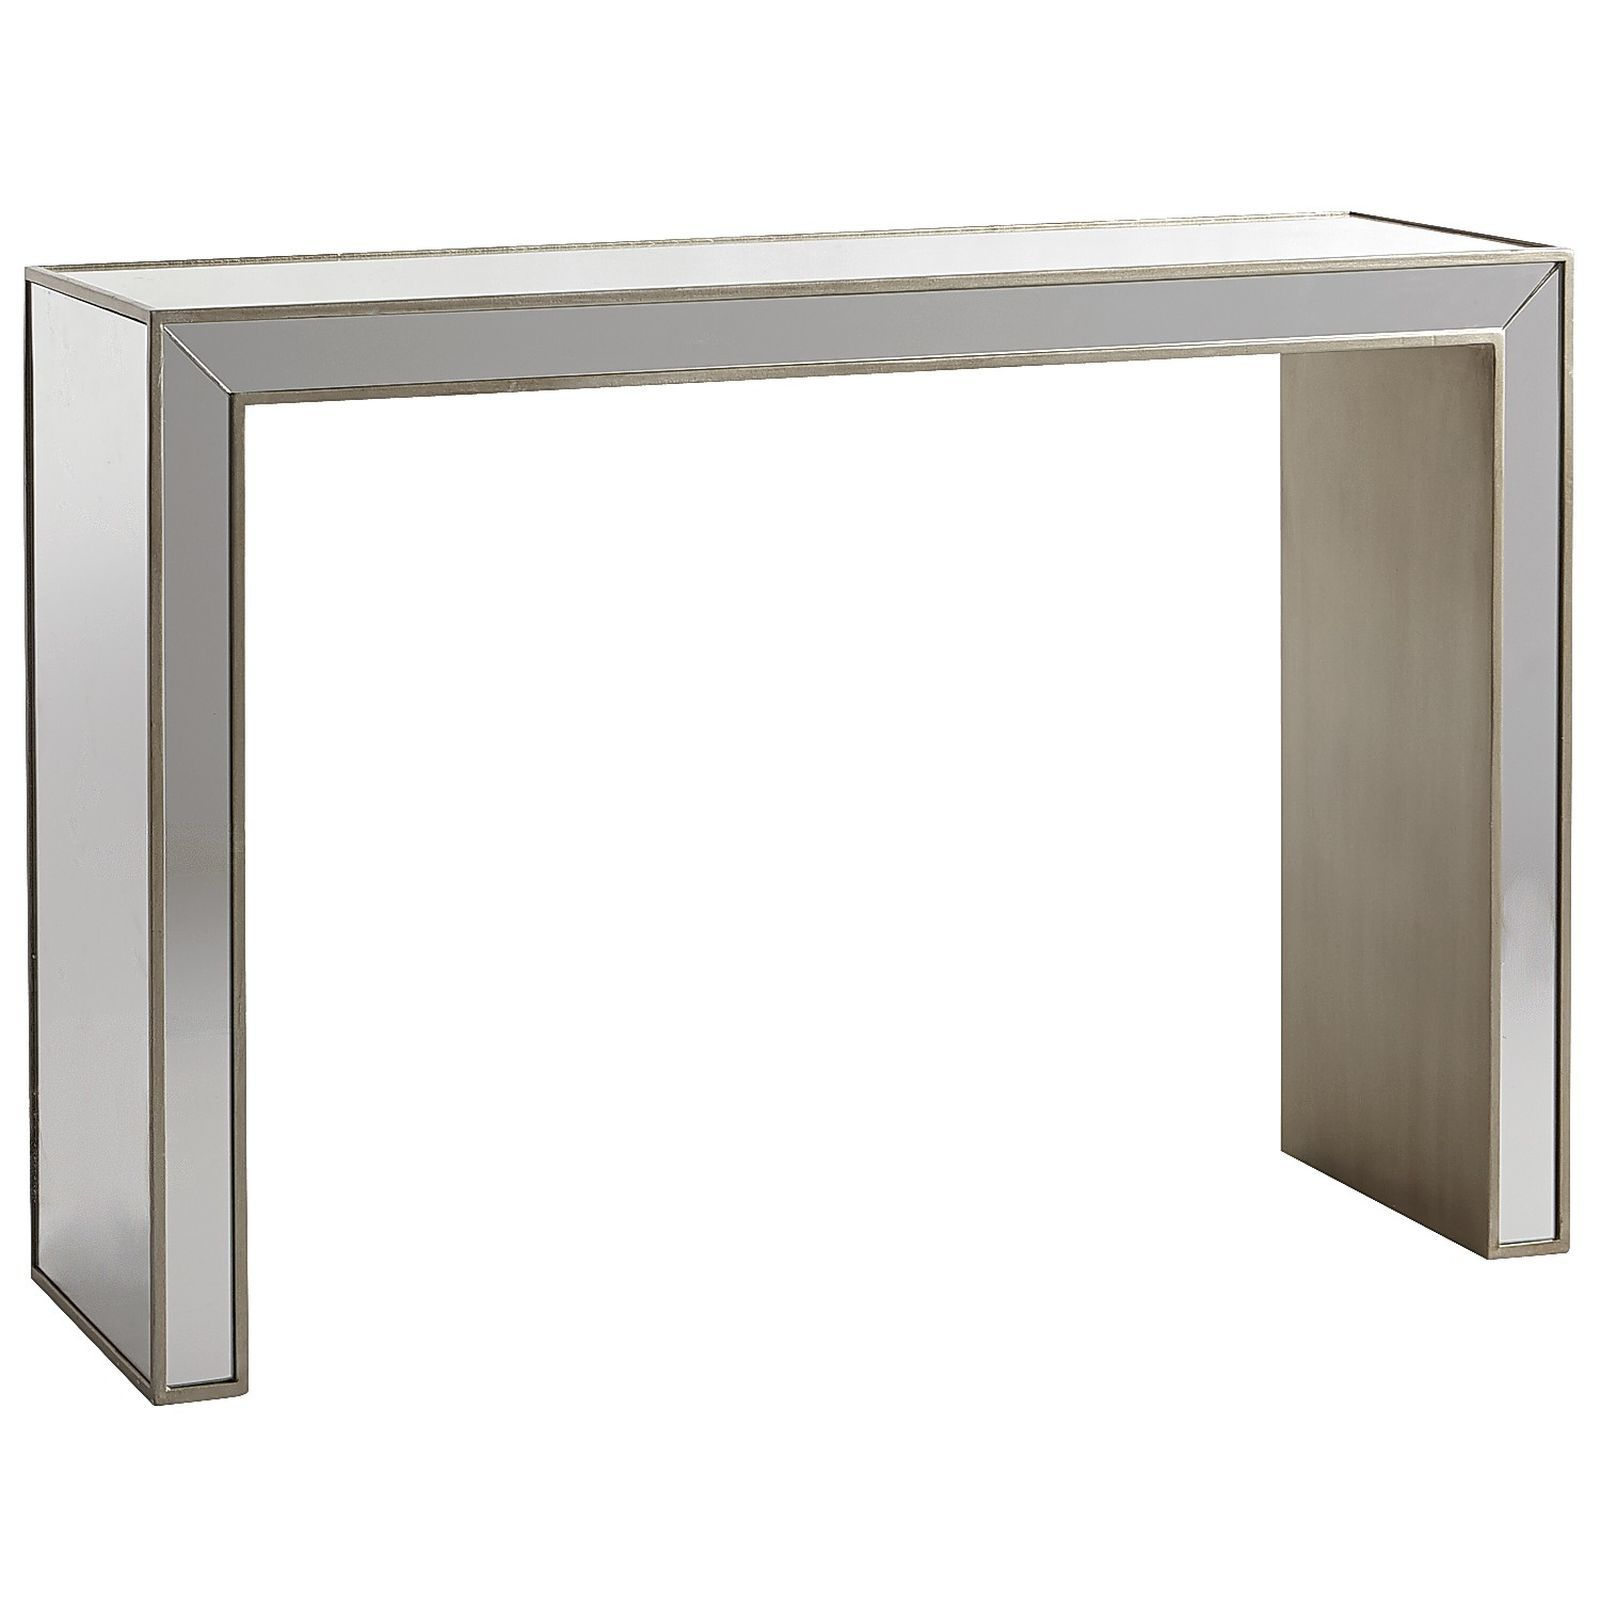 X2 Alexa Mirrored Console Table | Pier 1 Imports